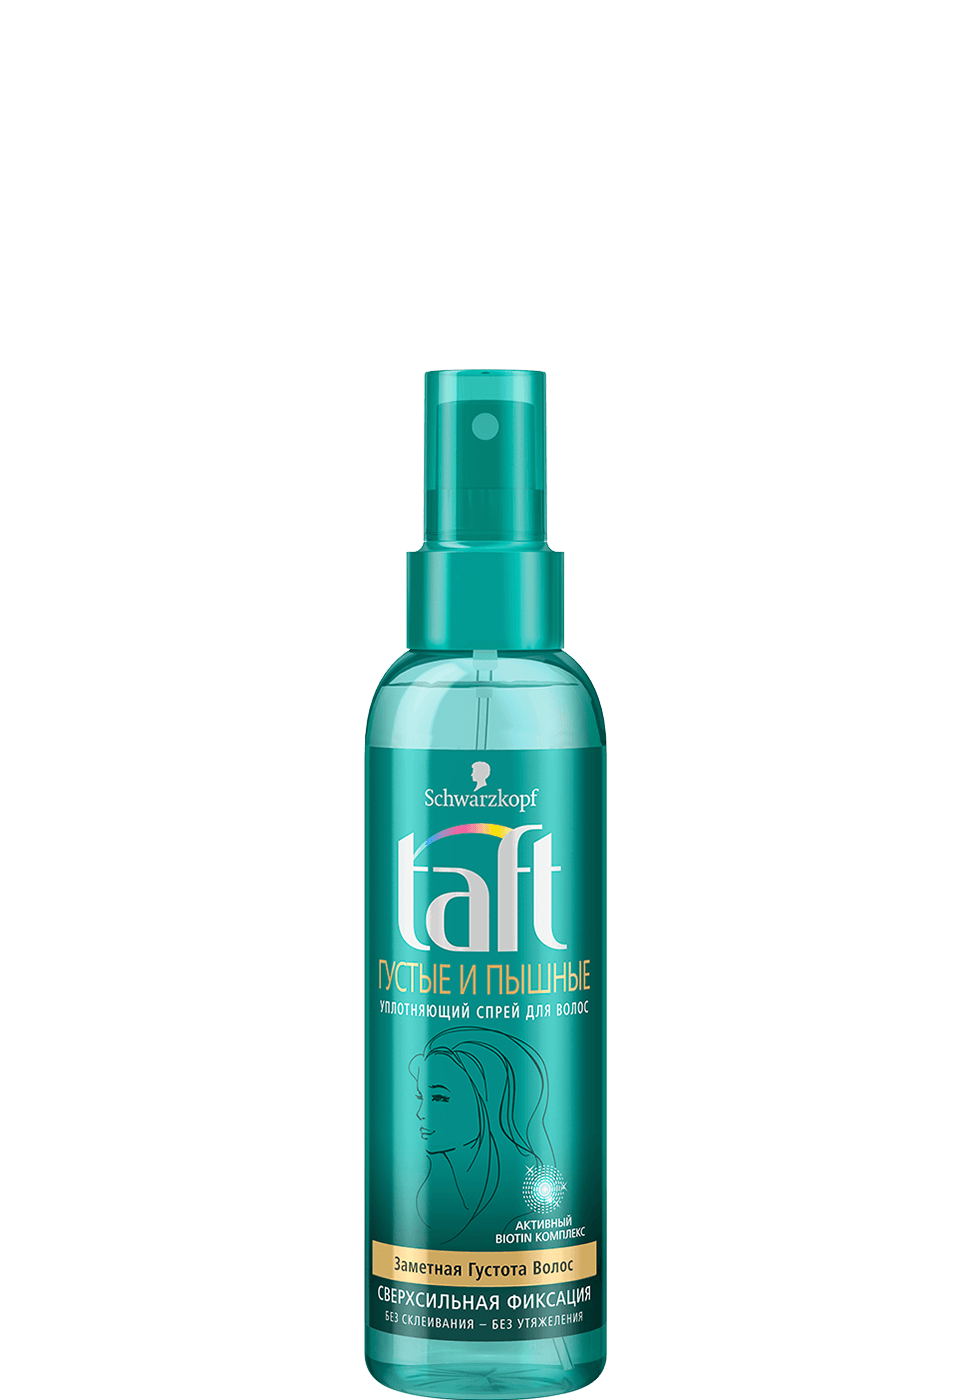 taft_ru_fullness_spray_970x1400